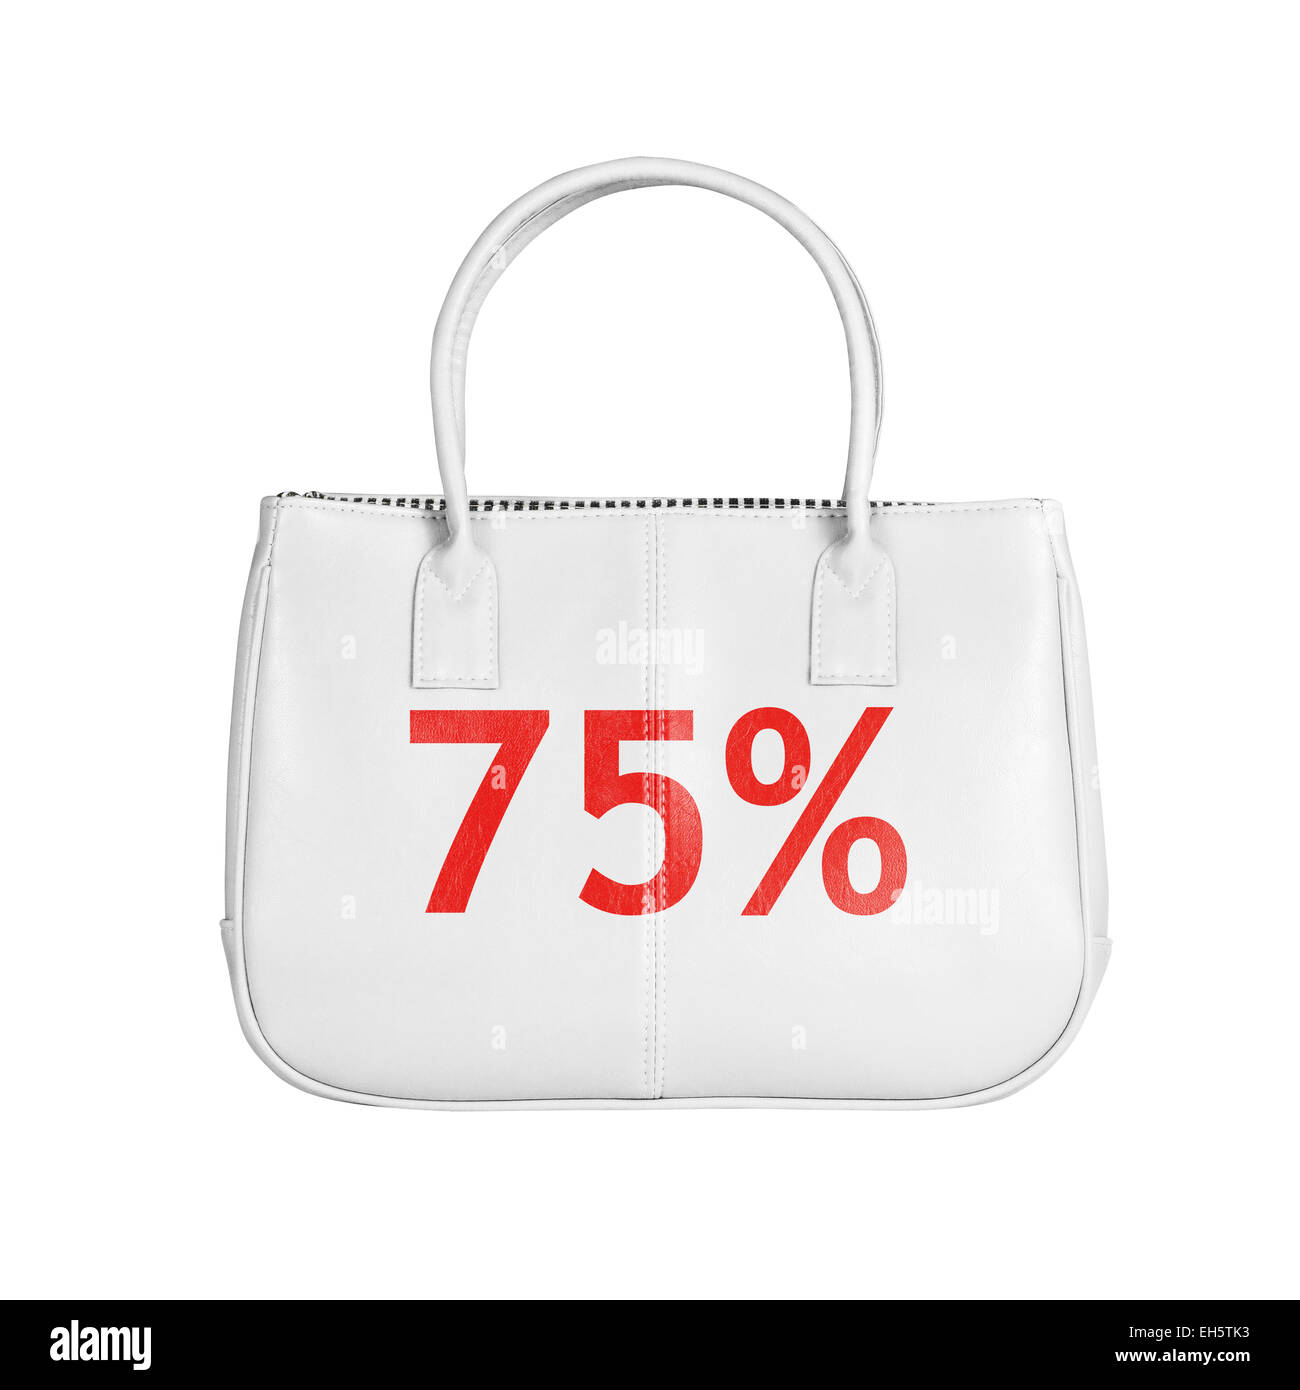 Seventy five percent sale bag. Design element isolated on white background with clipping path - Stock Image